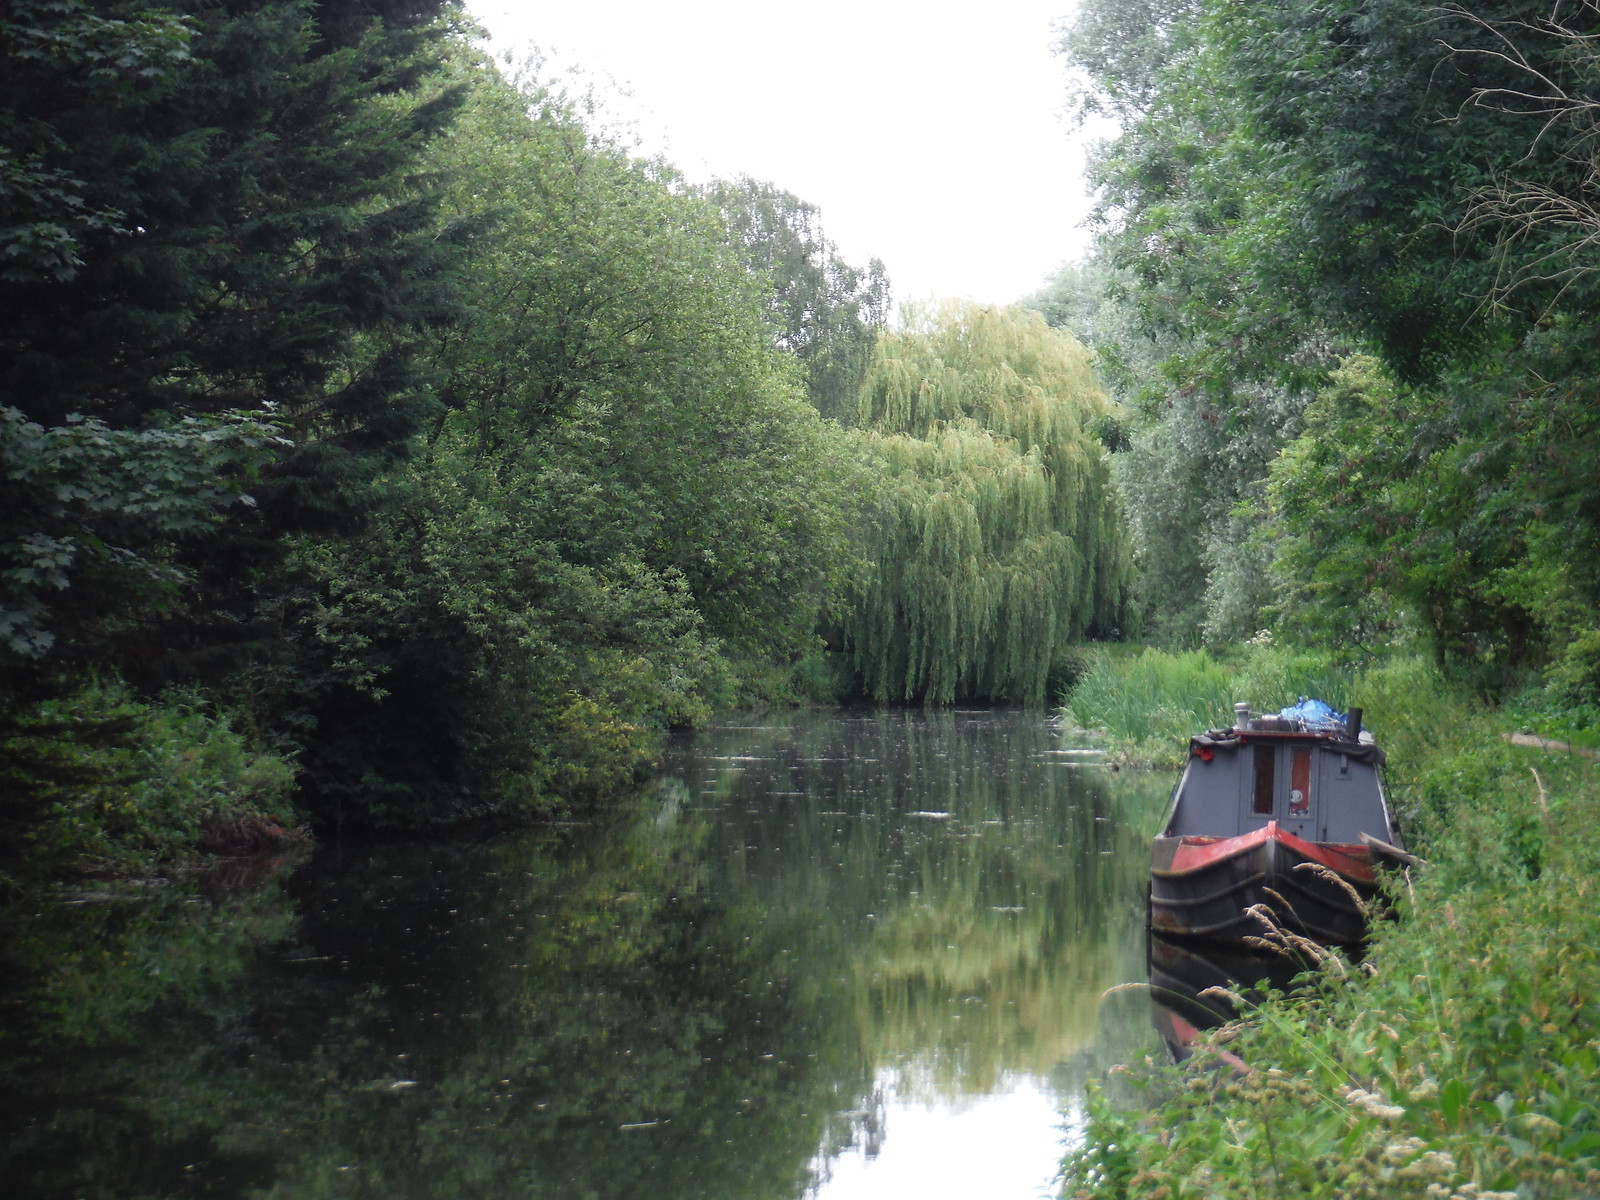 Willow and Barge, Twyford Bury, Stort Navigation SWC Walk 210 - Sawbridgeworth to Bishop's Stortfort (via Henry Moore Foundation)